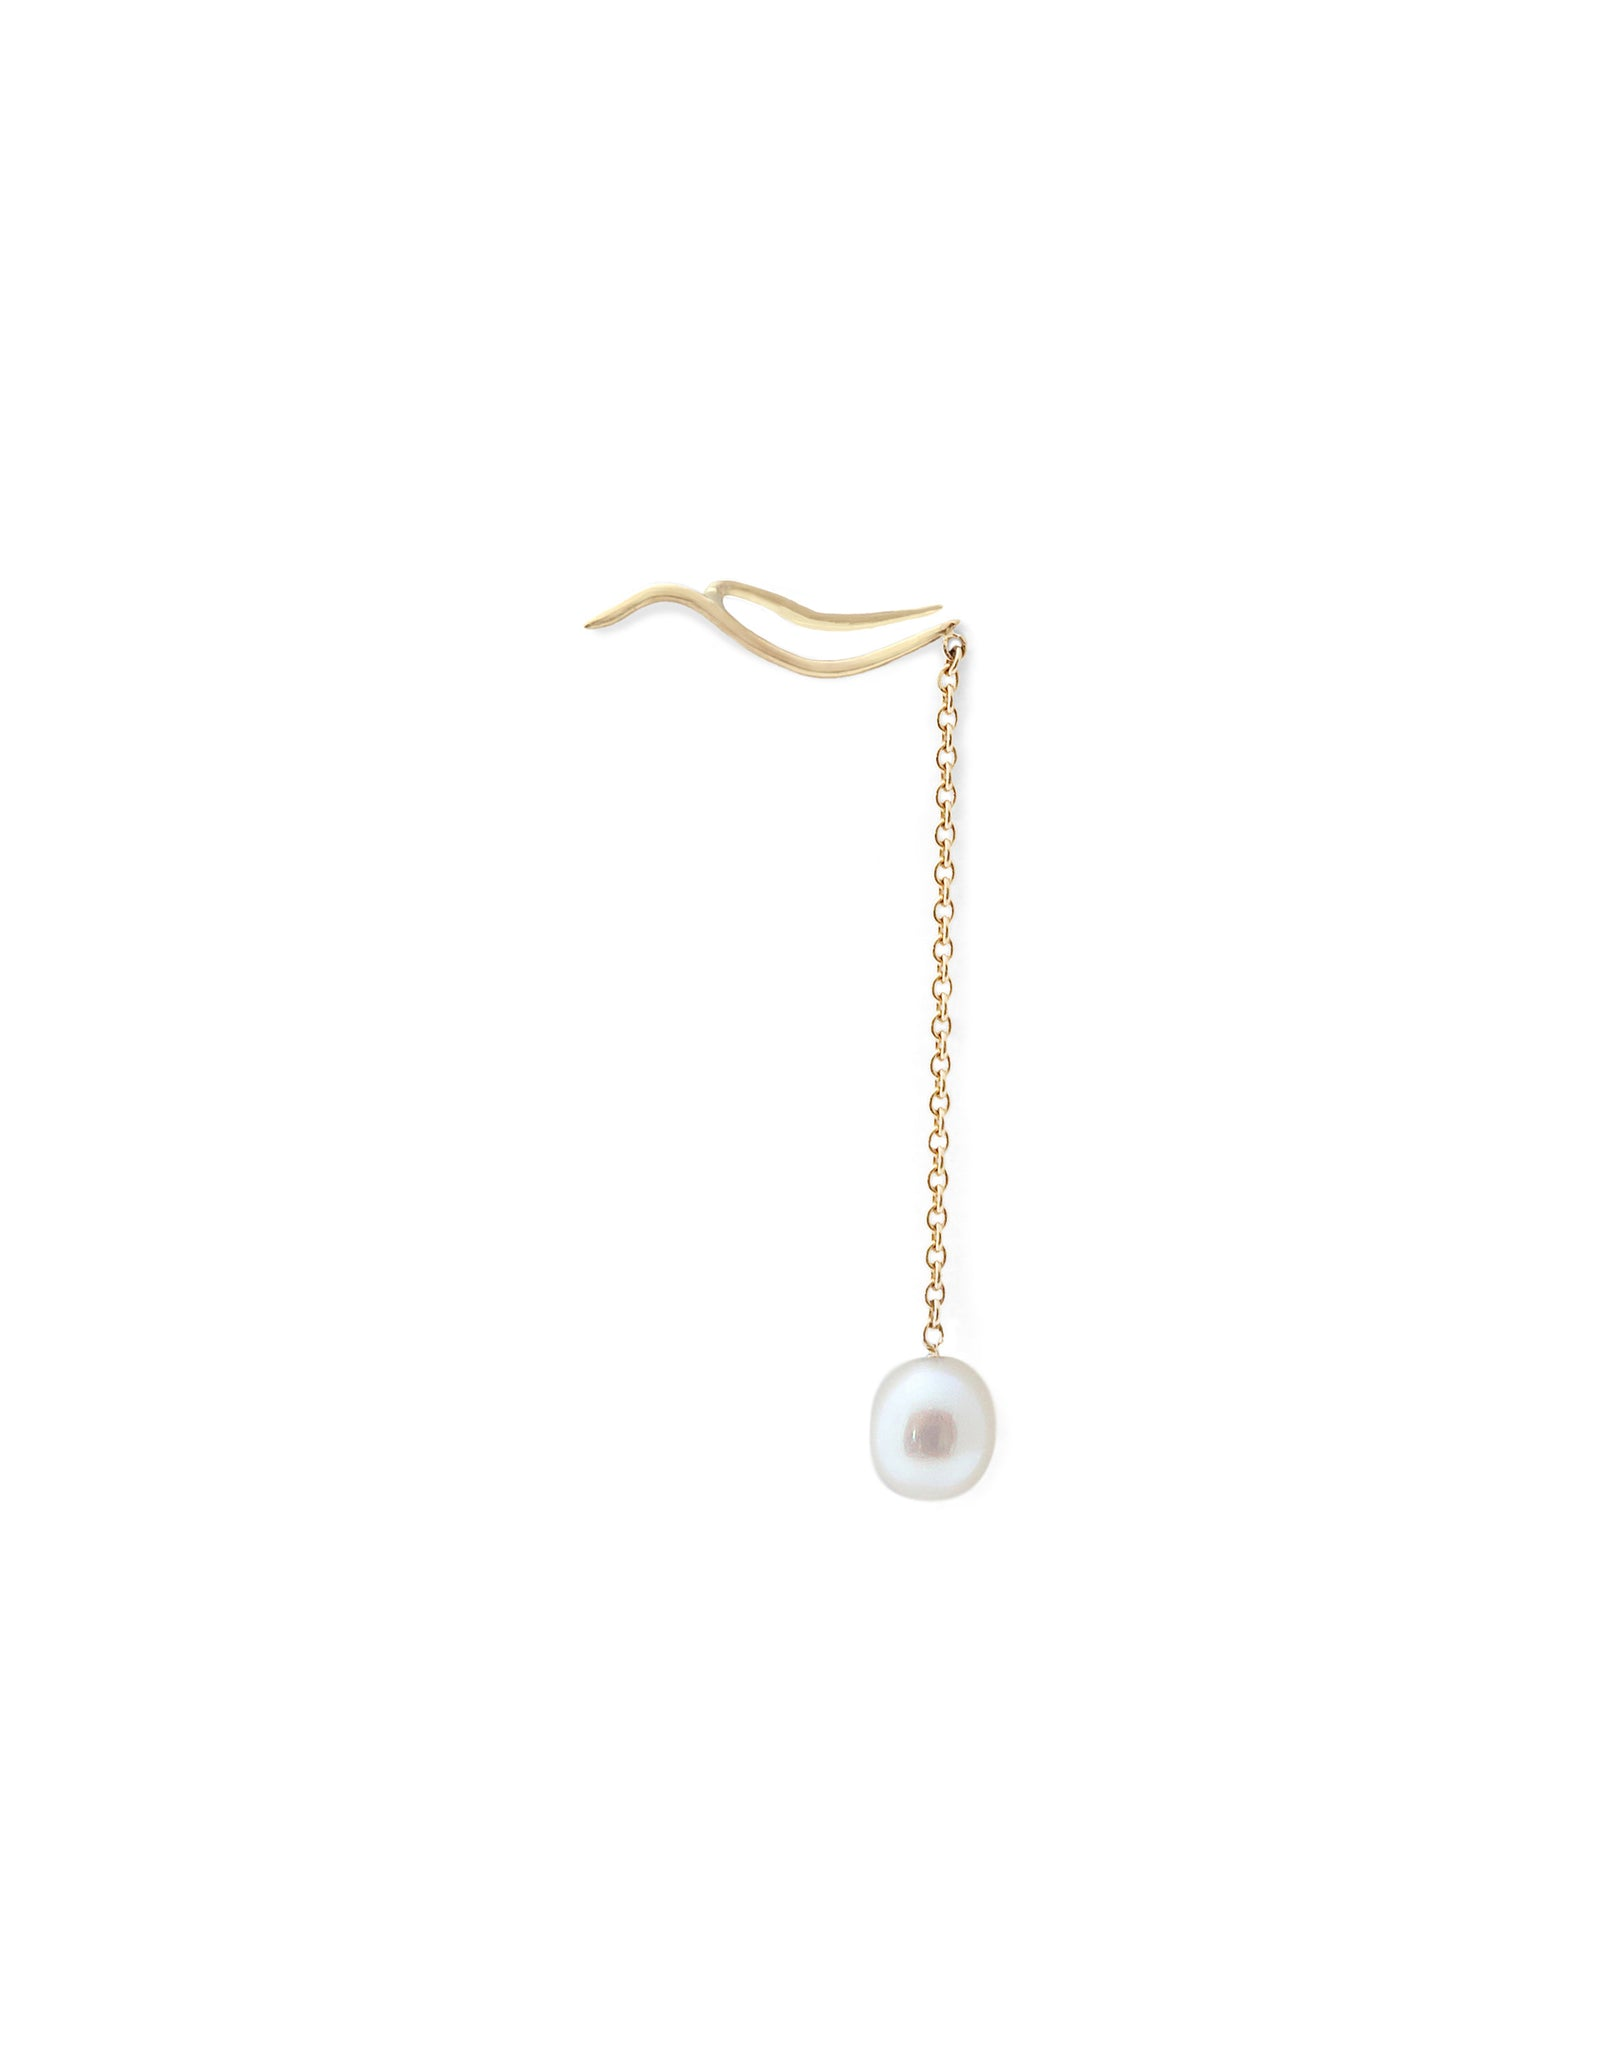 Earring 18K gold pearl - Tina earring pearl - Nayestones